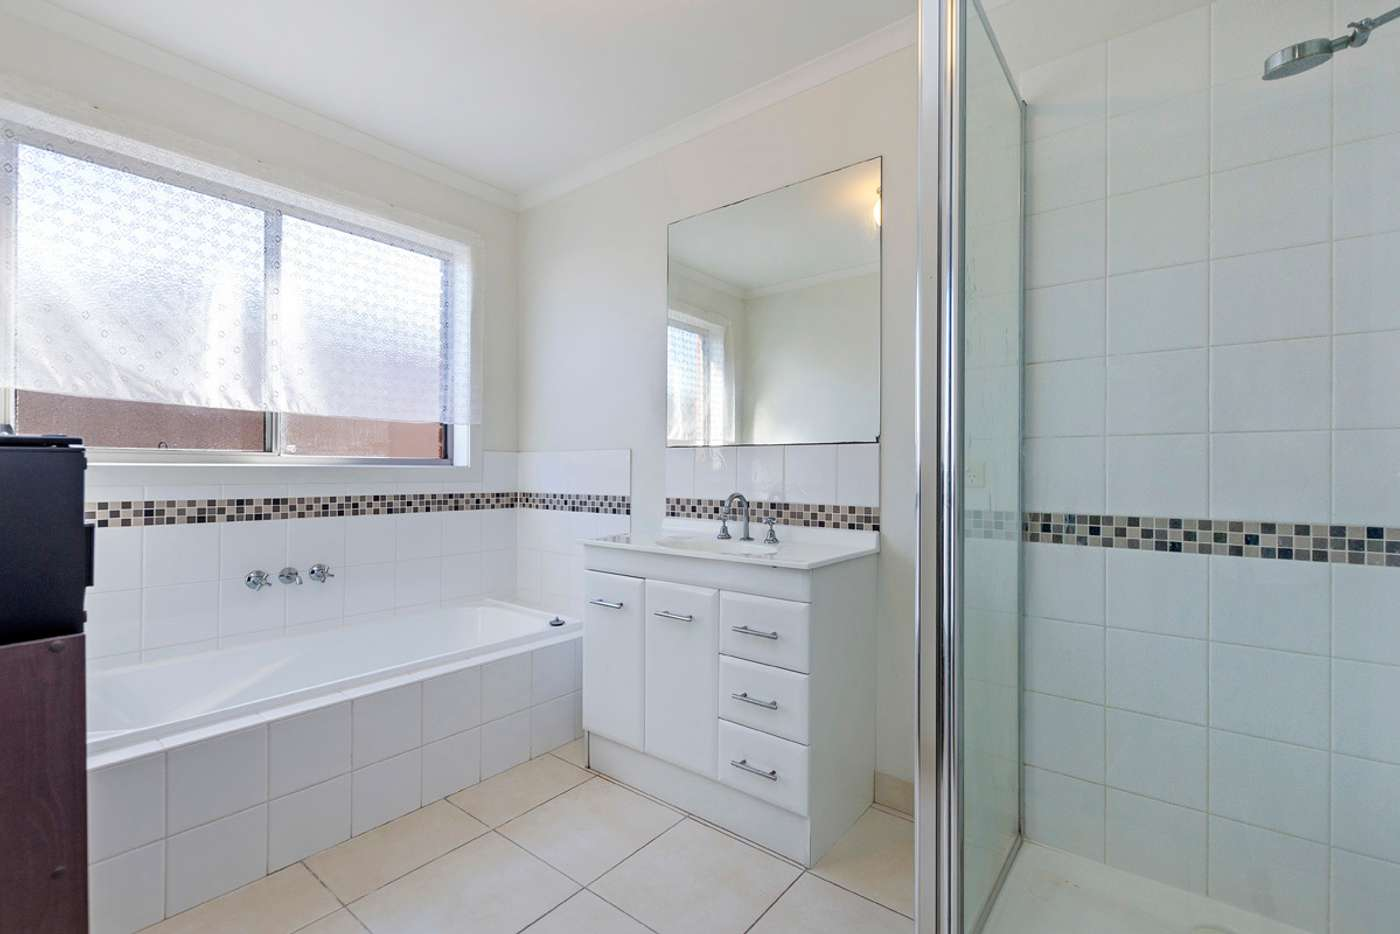 Sixth view of Homely house listing, 37 Madeira Close, Portland VIC 3305